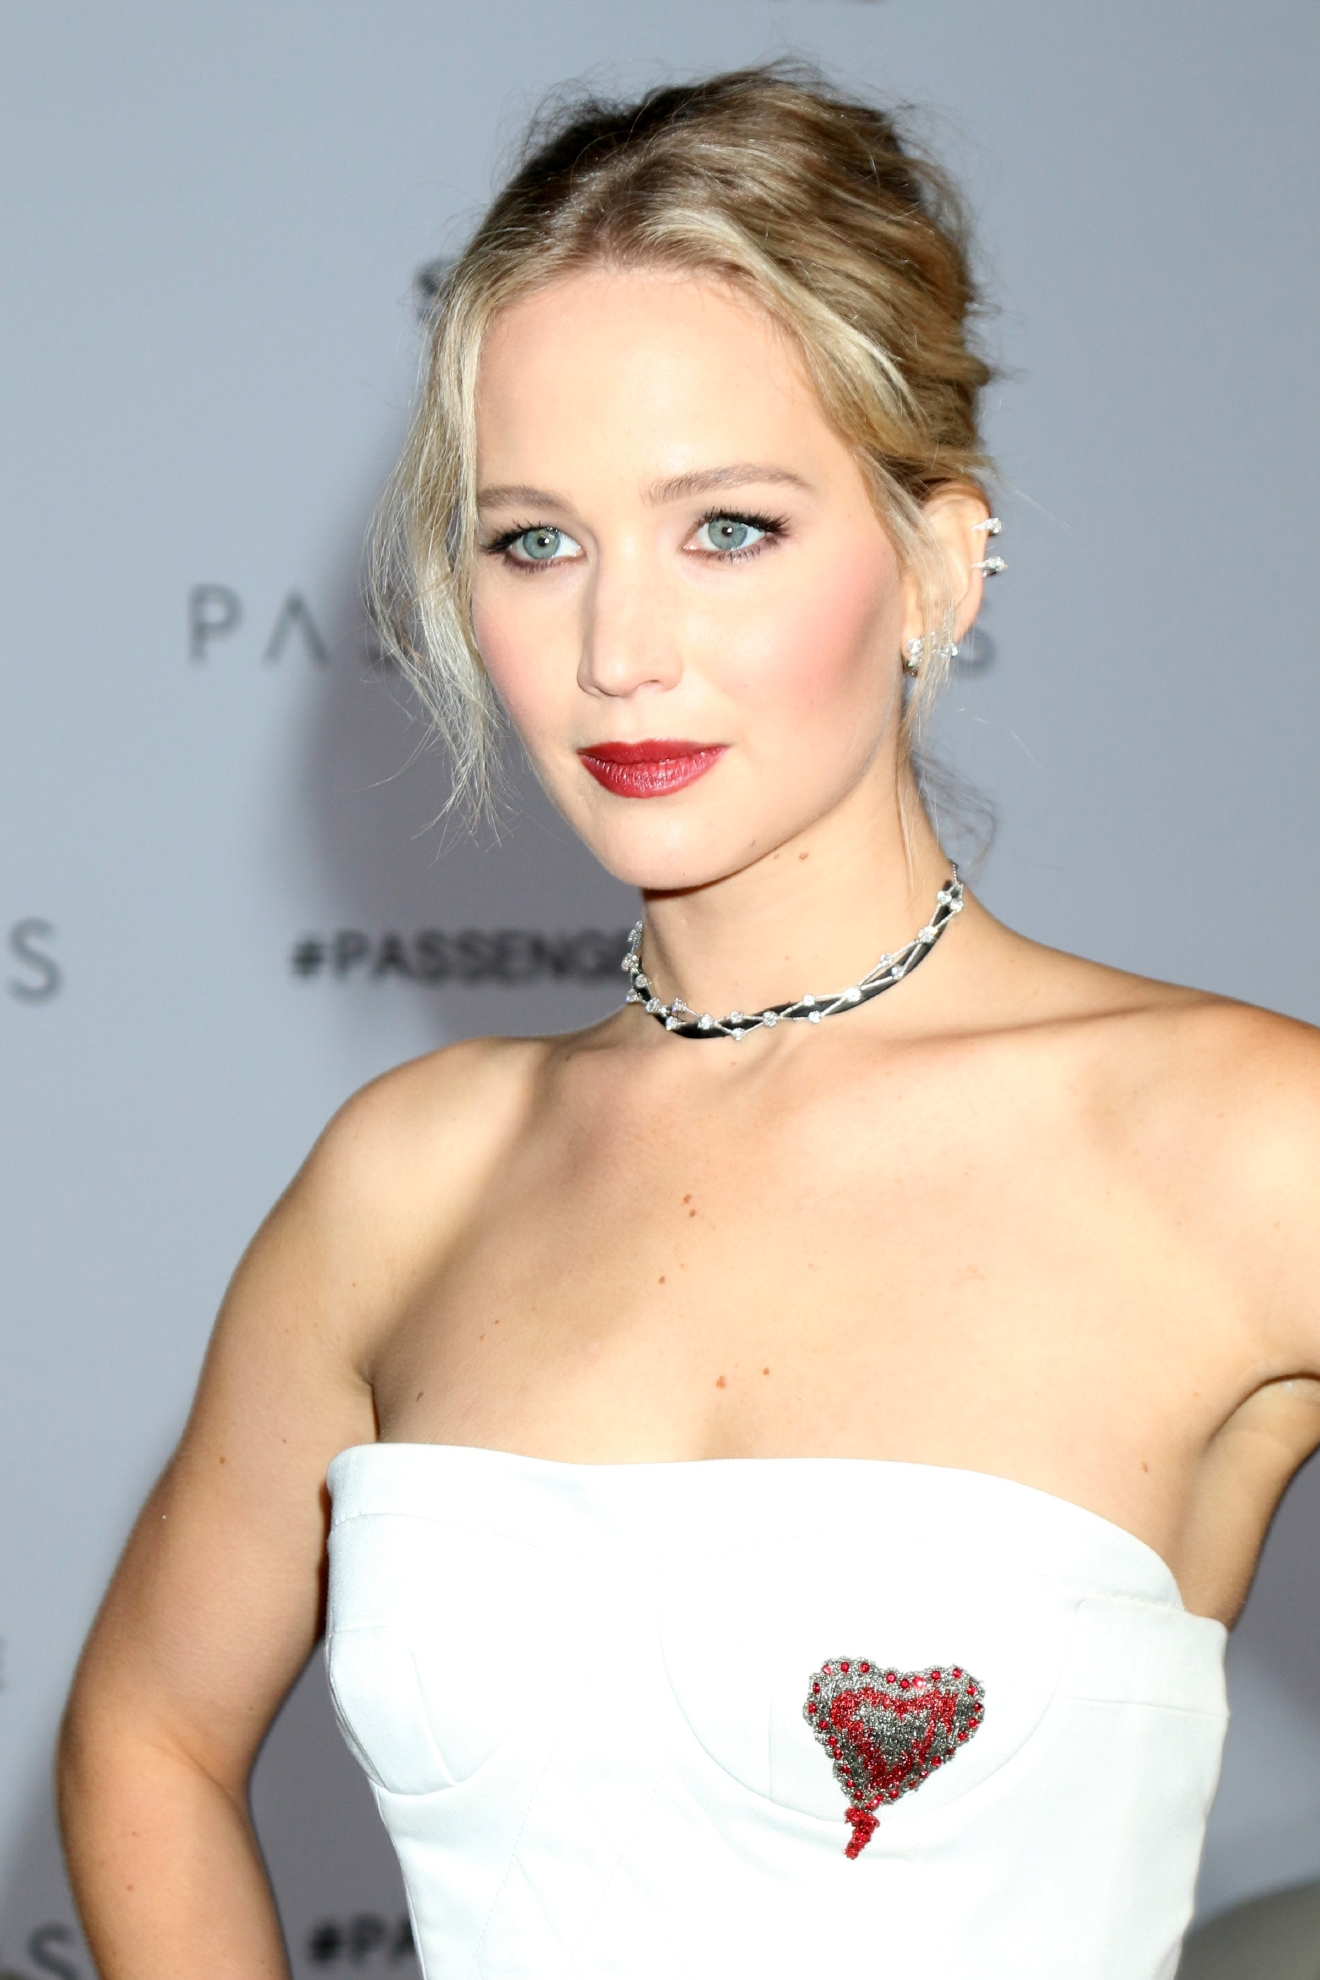 'Passengers' Premiere at the Village Theater - Arrivals  Featuring: Jennifer Lawrence Where: Westwood, California, United States When: 15 Dec 2016 Credit: Nicky Nelson/WENN.com